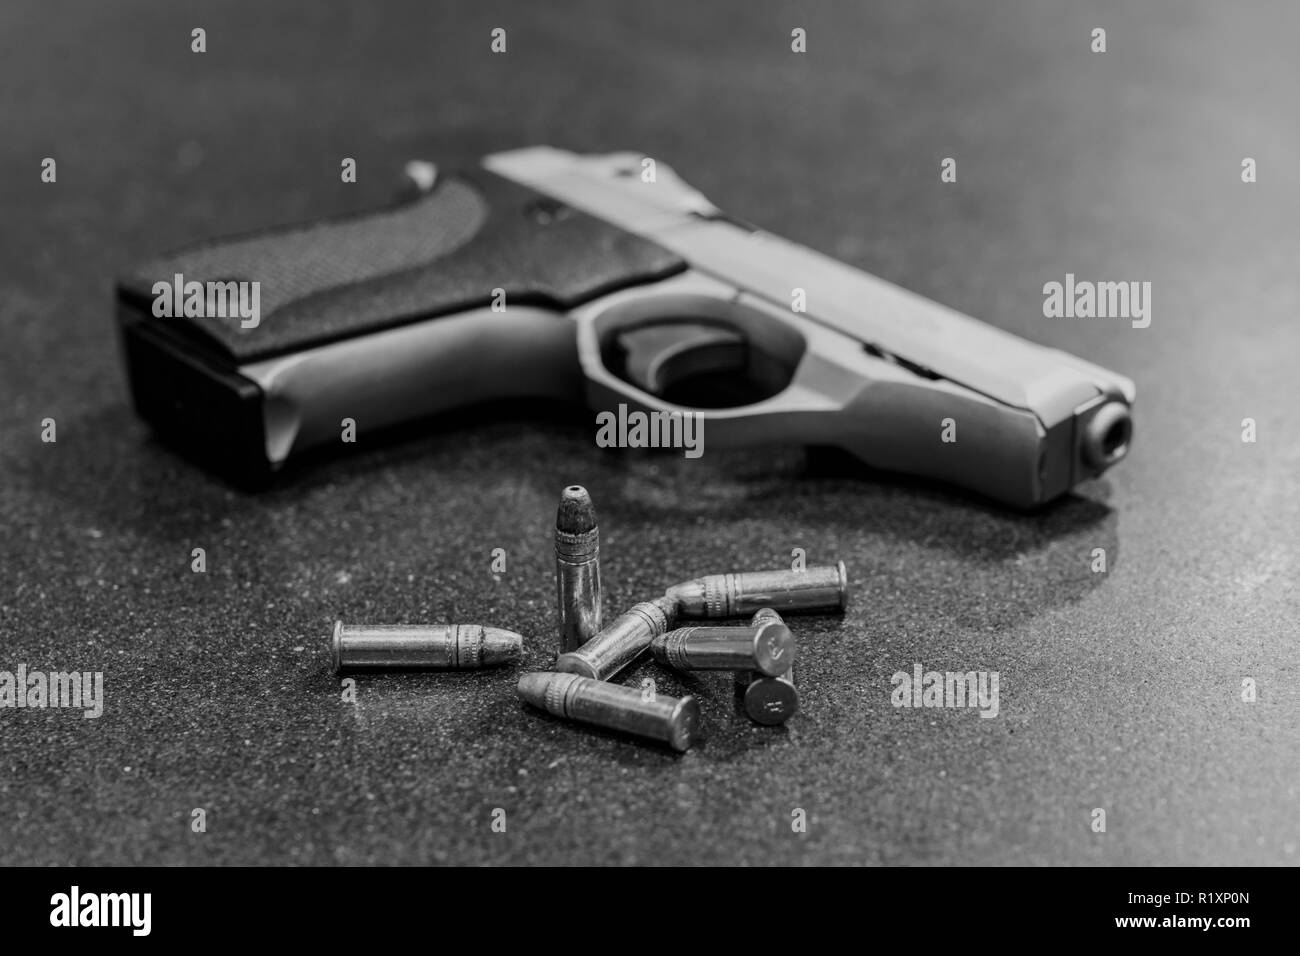 Bullets and Handgun on Black Table - Stock Image